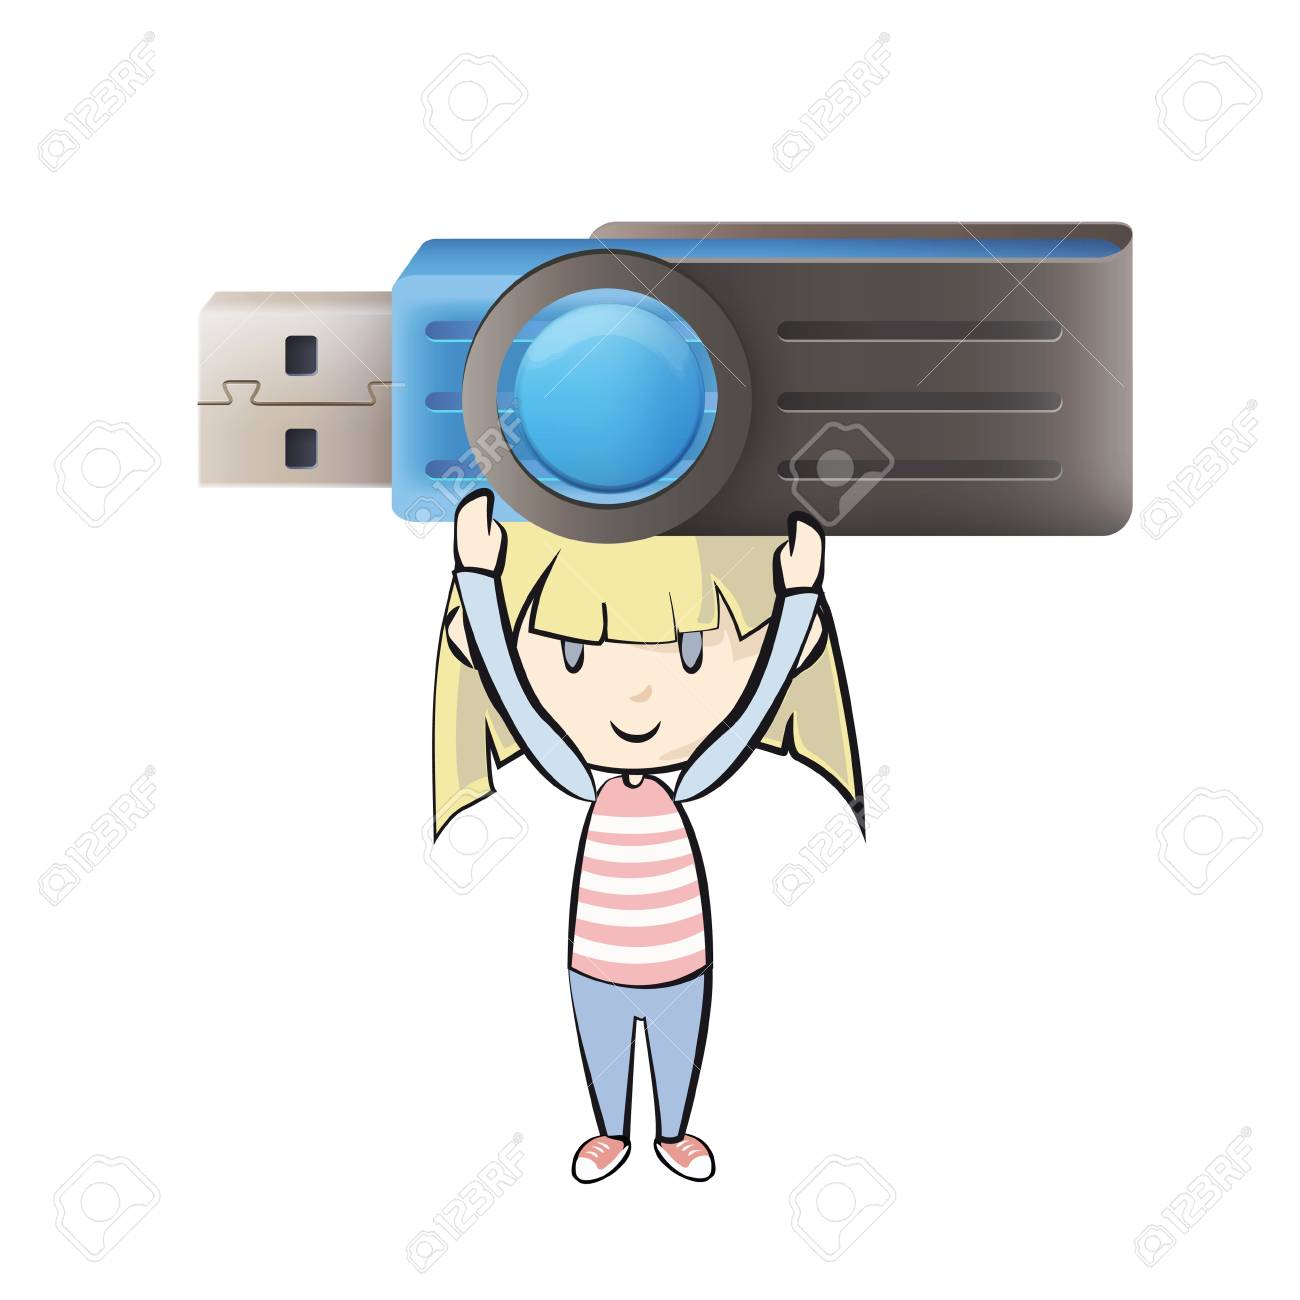 Girl holding a realistic blue pendrive. Stock Vector - 21297612